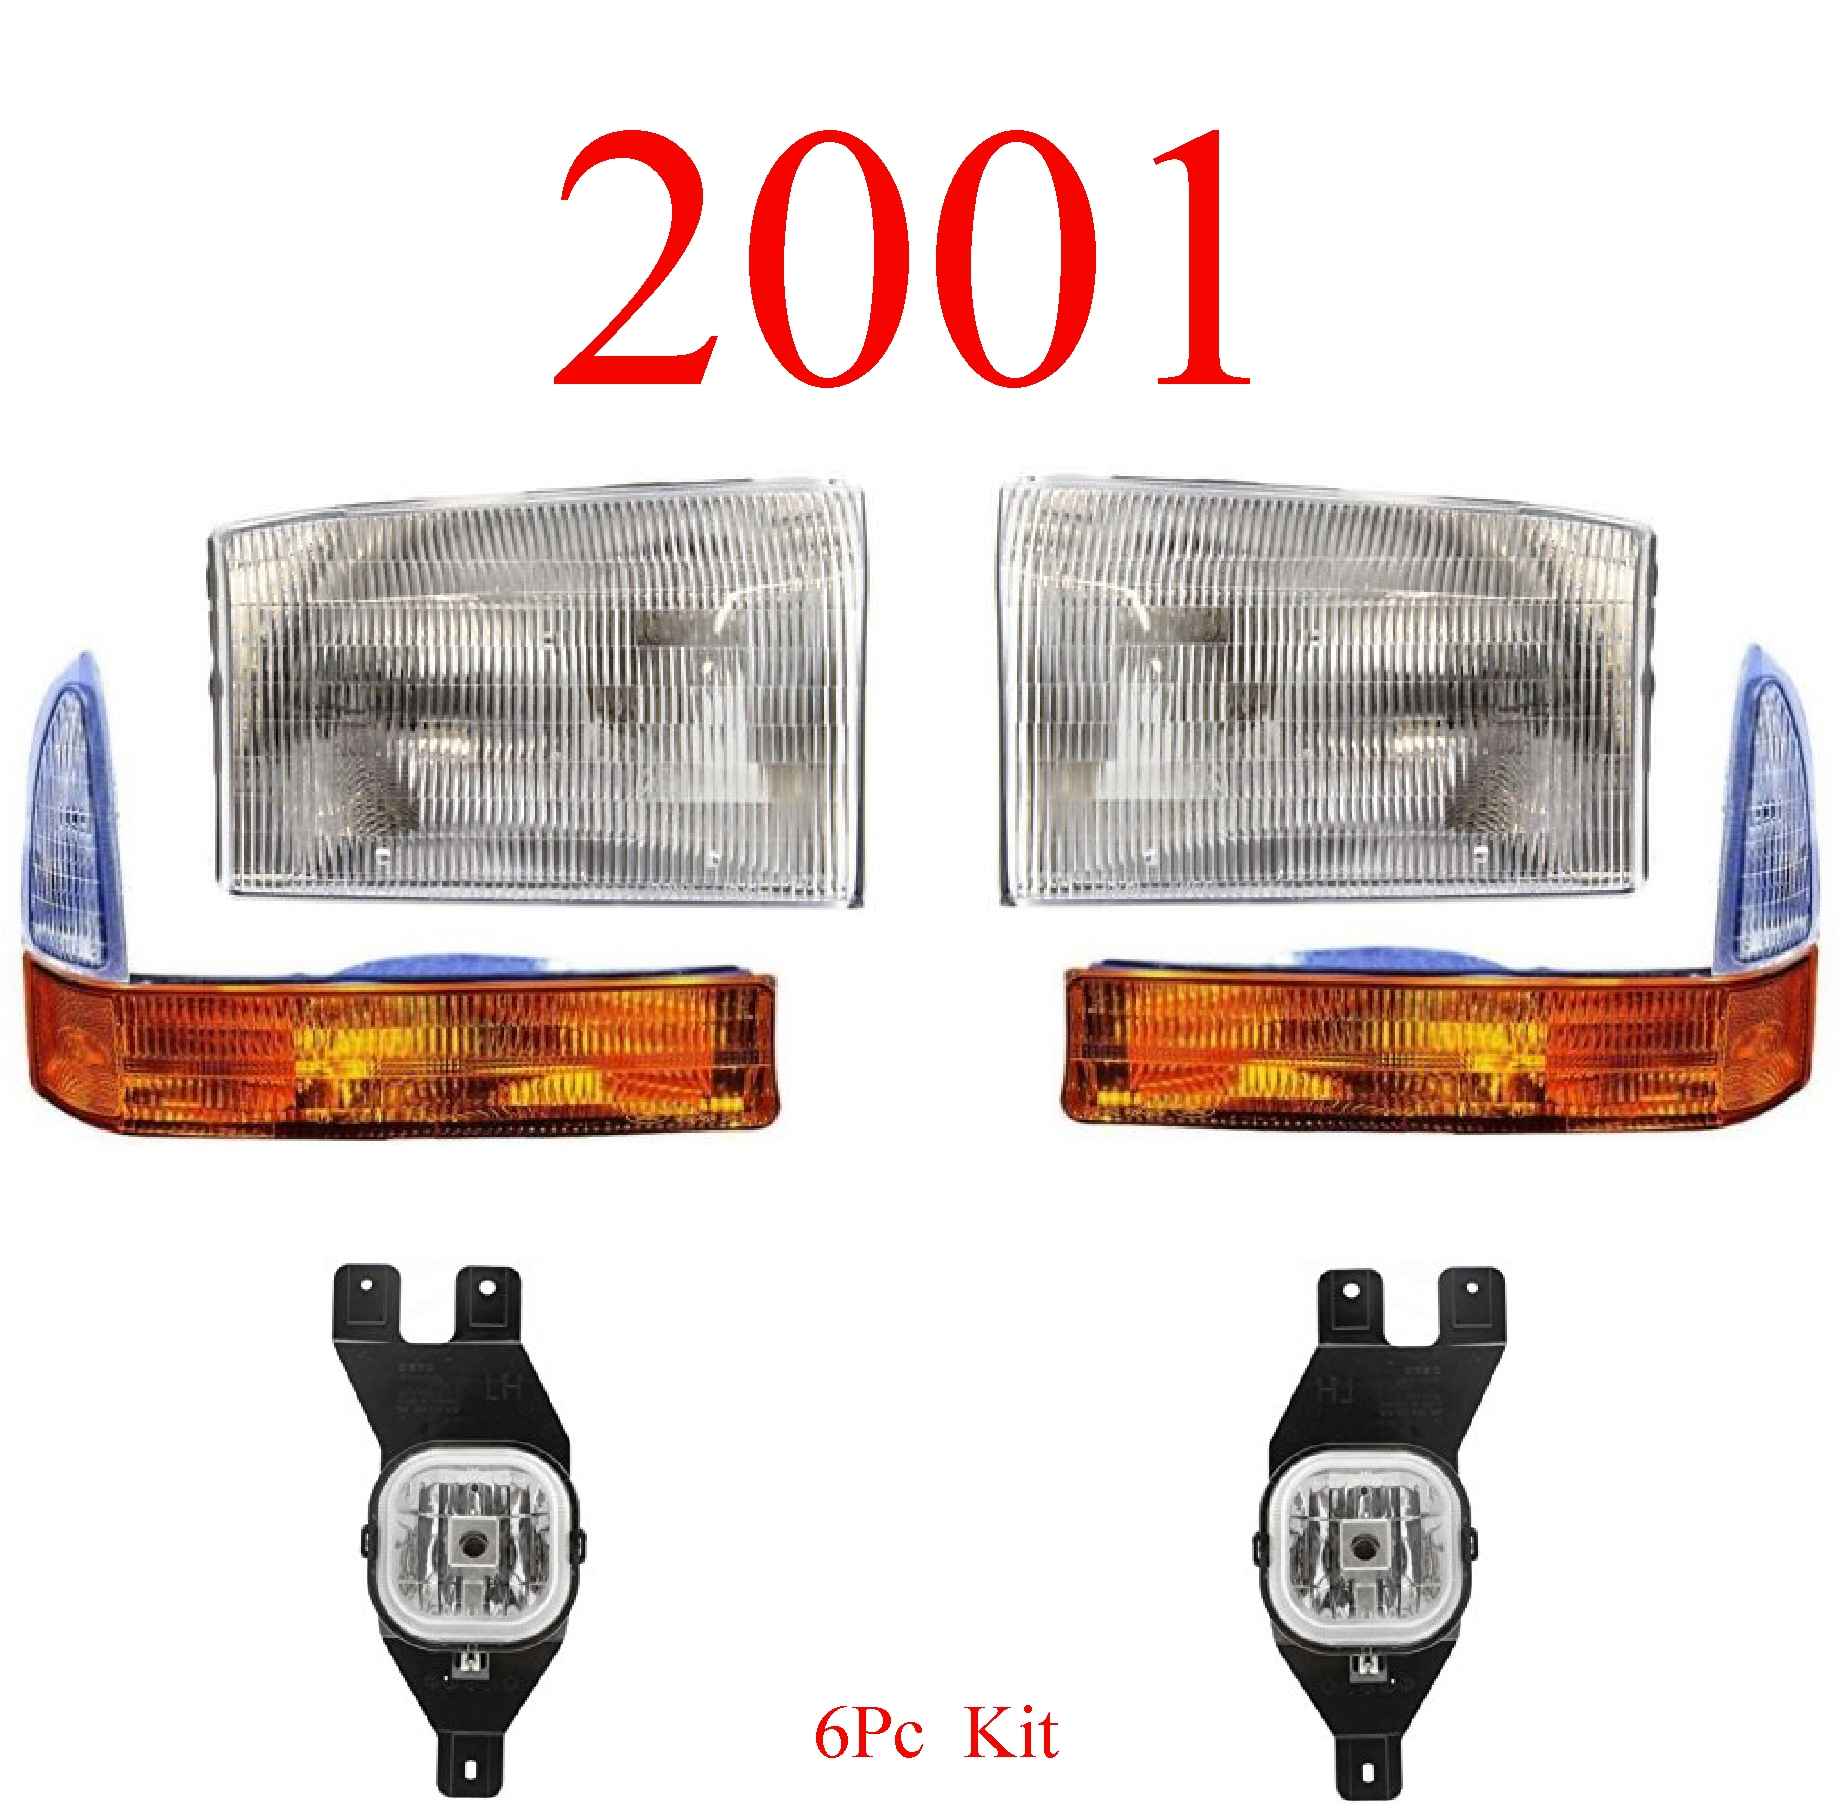 01 Ford Excursion 6Pc Head, Park & Fog Light Kit